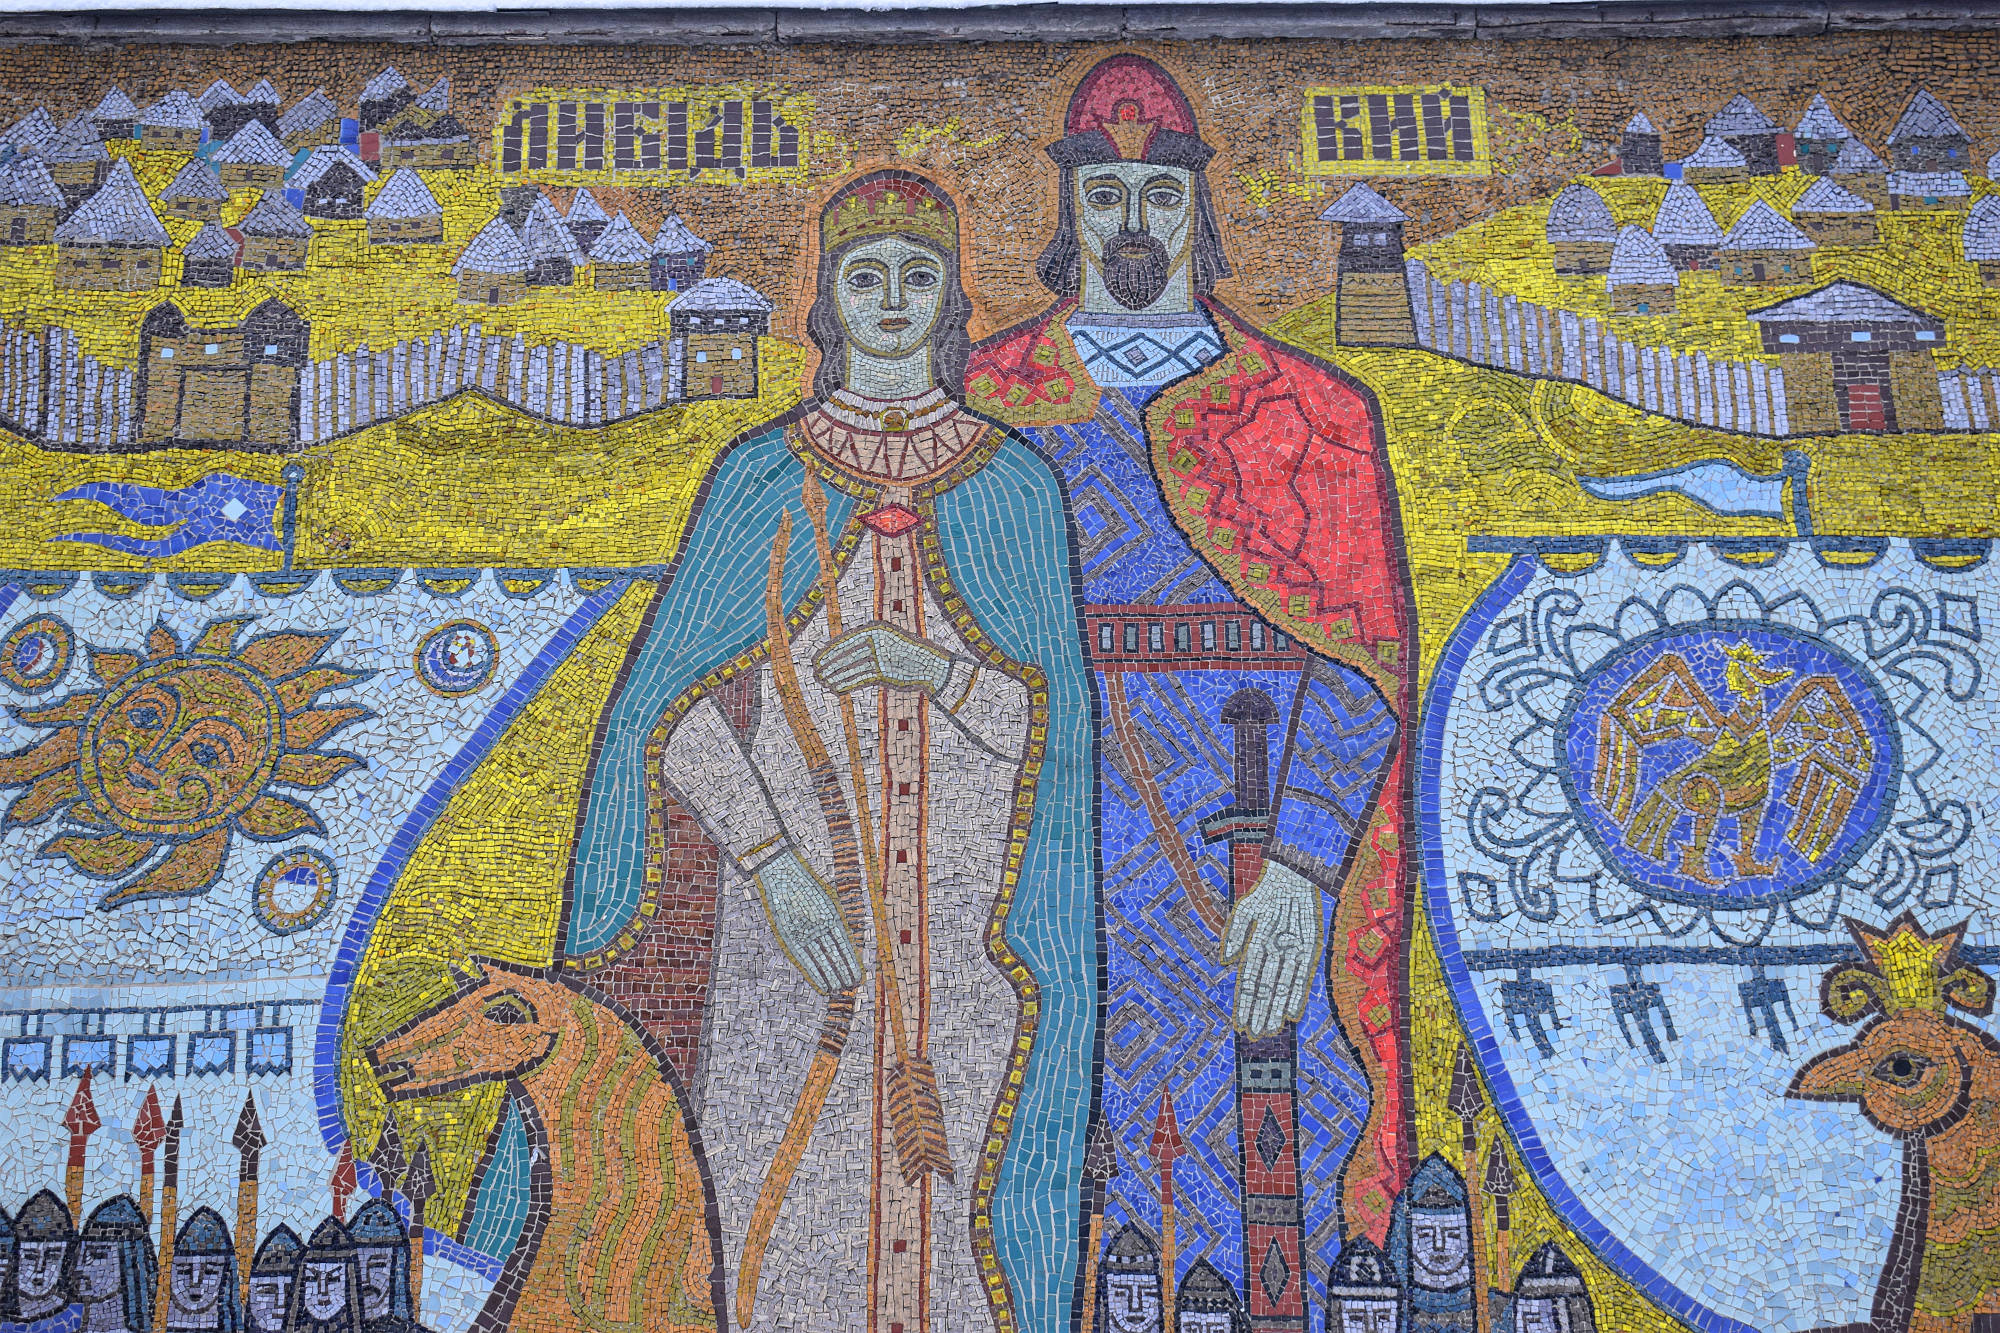 mosaic composition by Grygir Dovzhenko